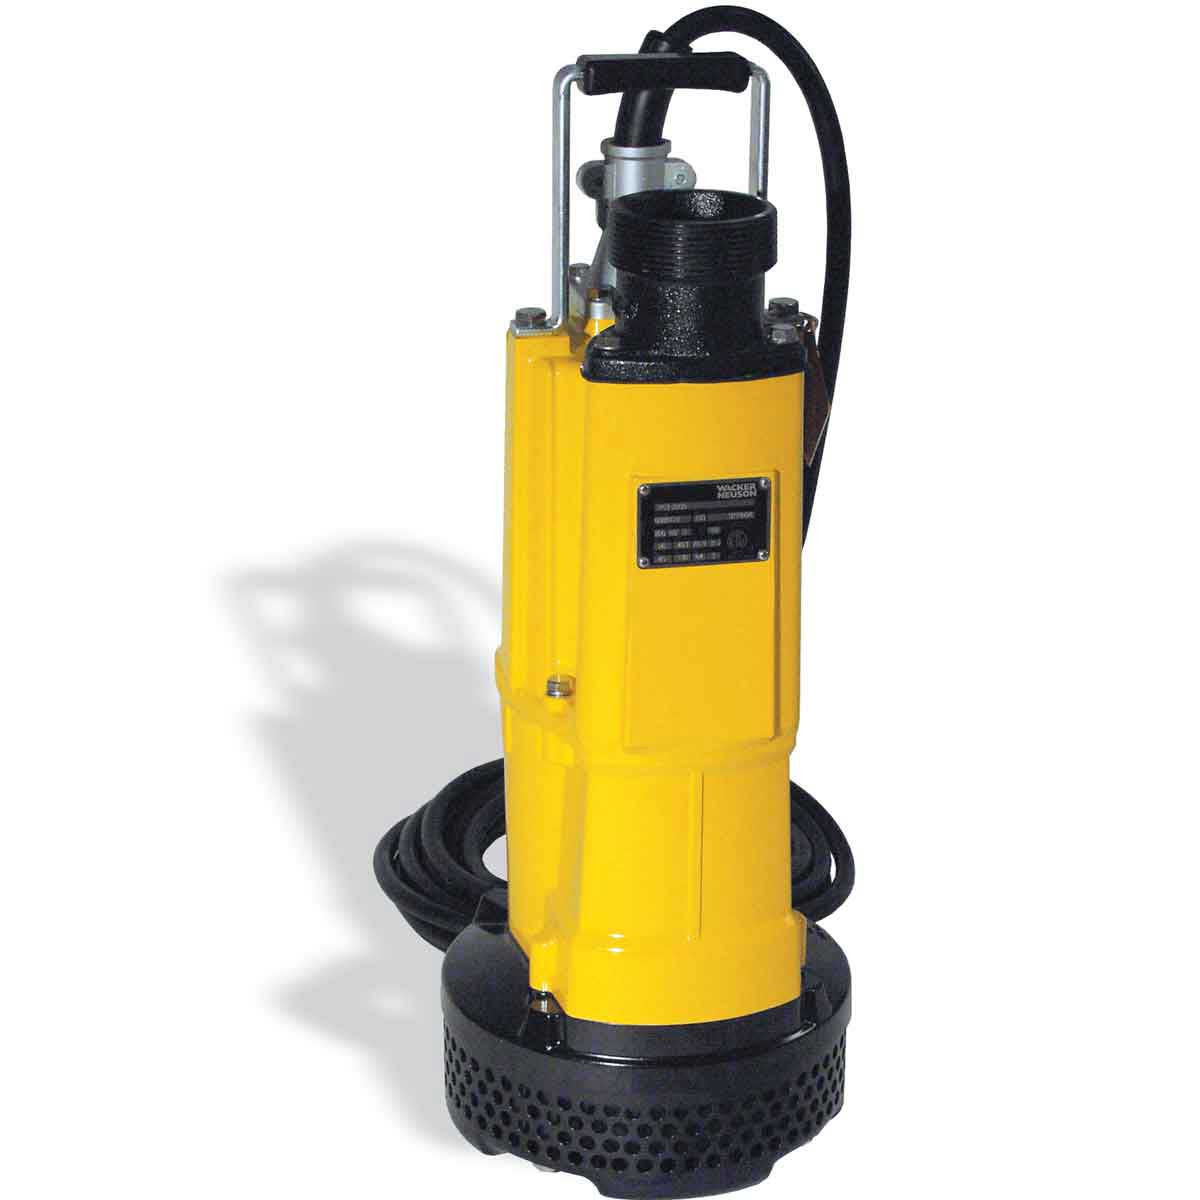 Wacker Neuson 3 inch Submersible Pump 220V